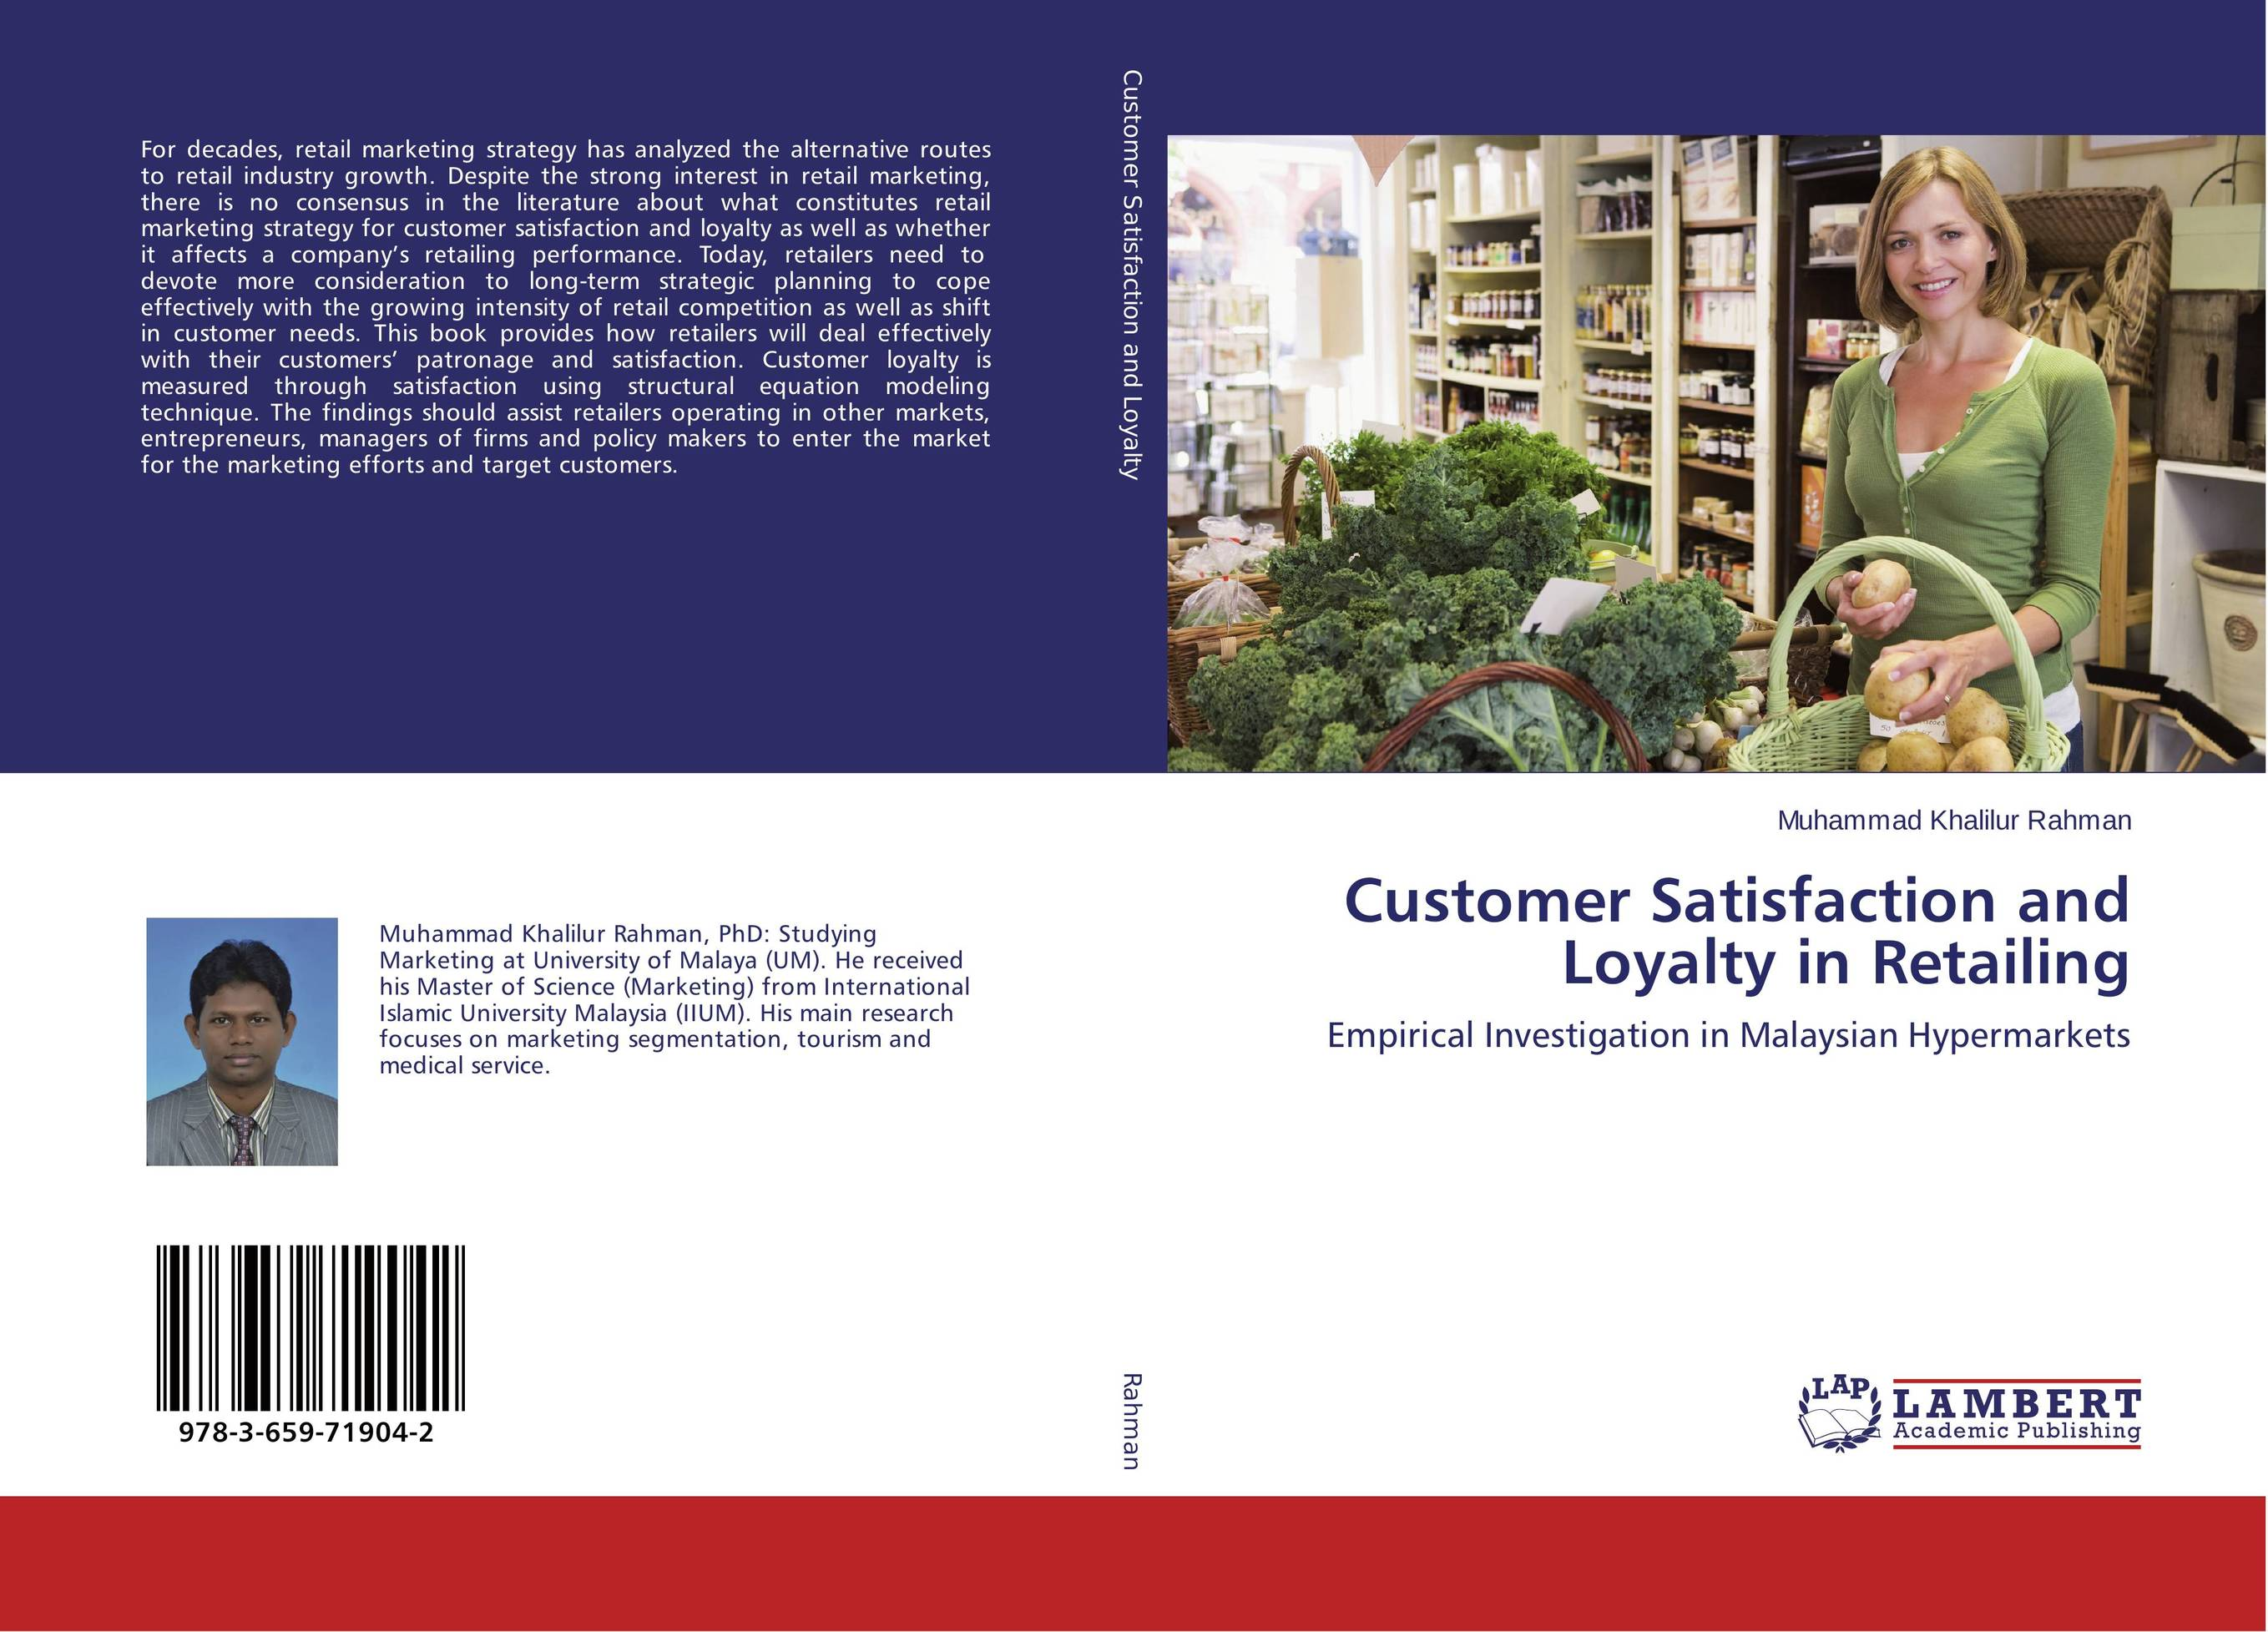 Customer Satisfaction and Loyalty in Retailing adding customer value through effective distribution strategy